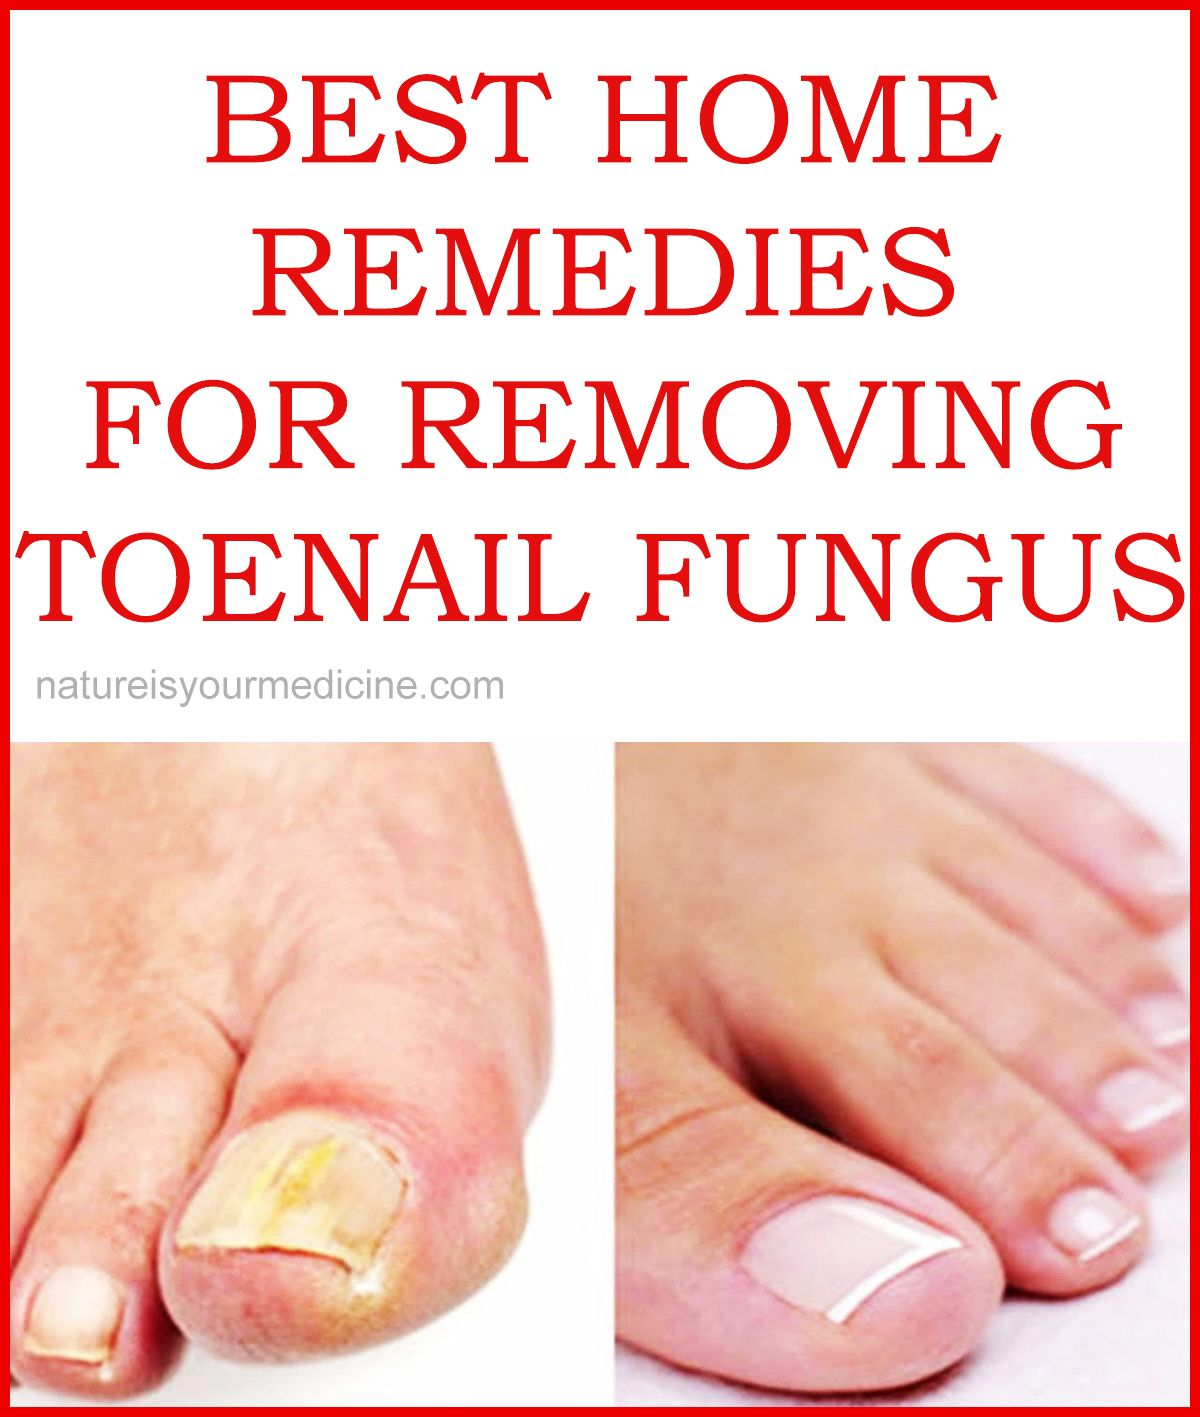 BEST HOME REMEDIES FOR REMOVING TOENAIL FUNGUS | HealthyAndNaturally ...